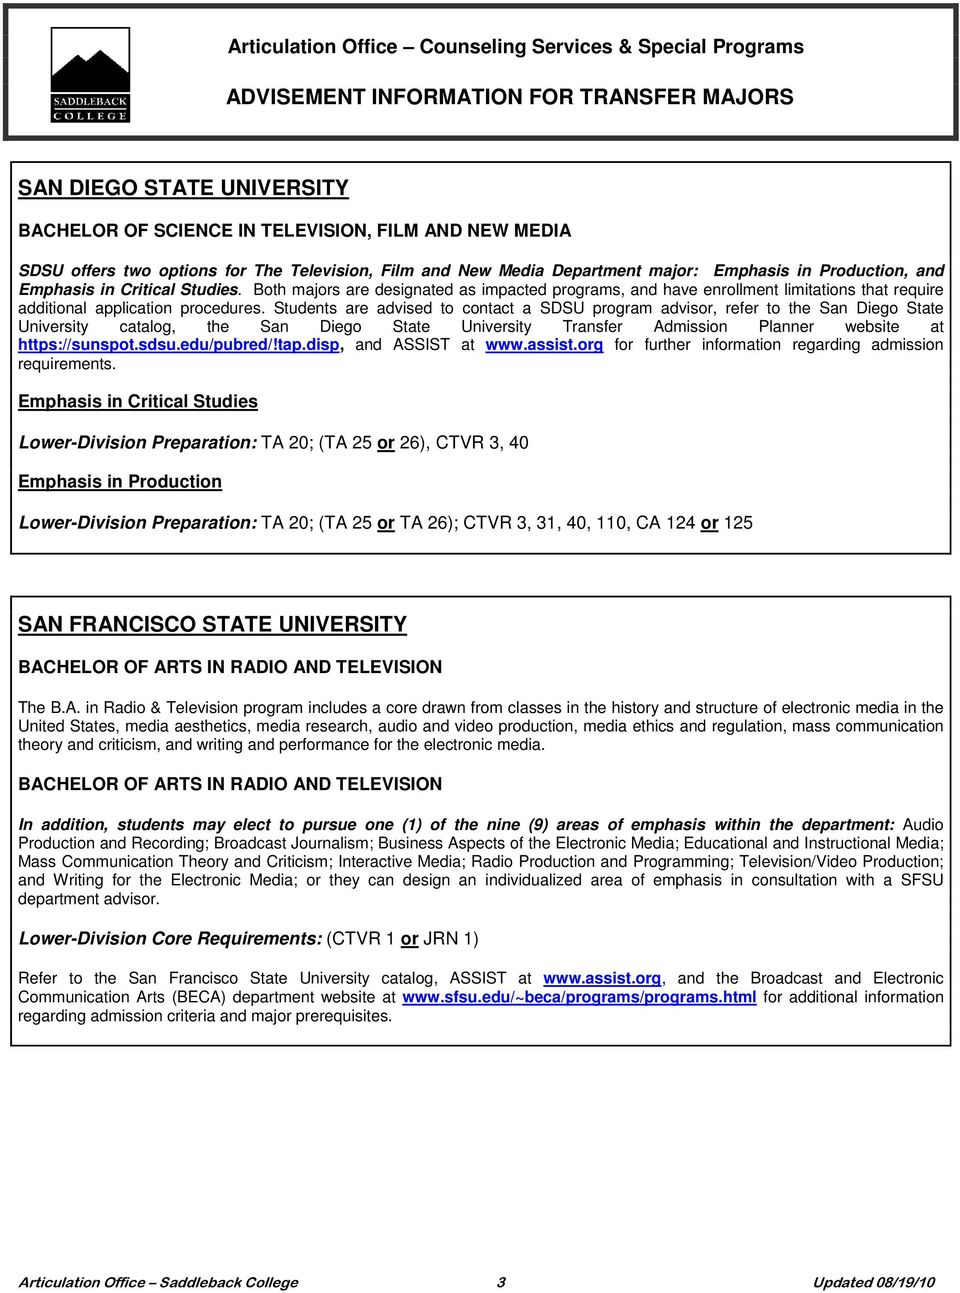 Students are advised to contact a SDSU program advisor, refer to the San Diego State University catalog, the San Diego State University Transfer Admission Planner website at https://sunspot.sdsu.